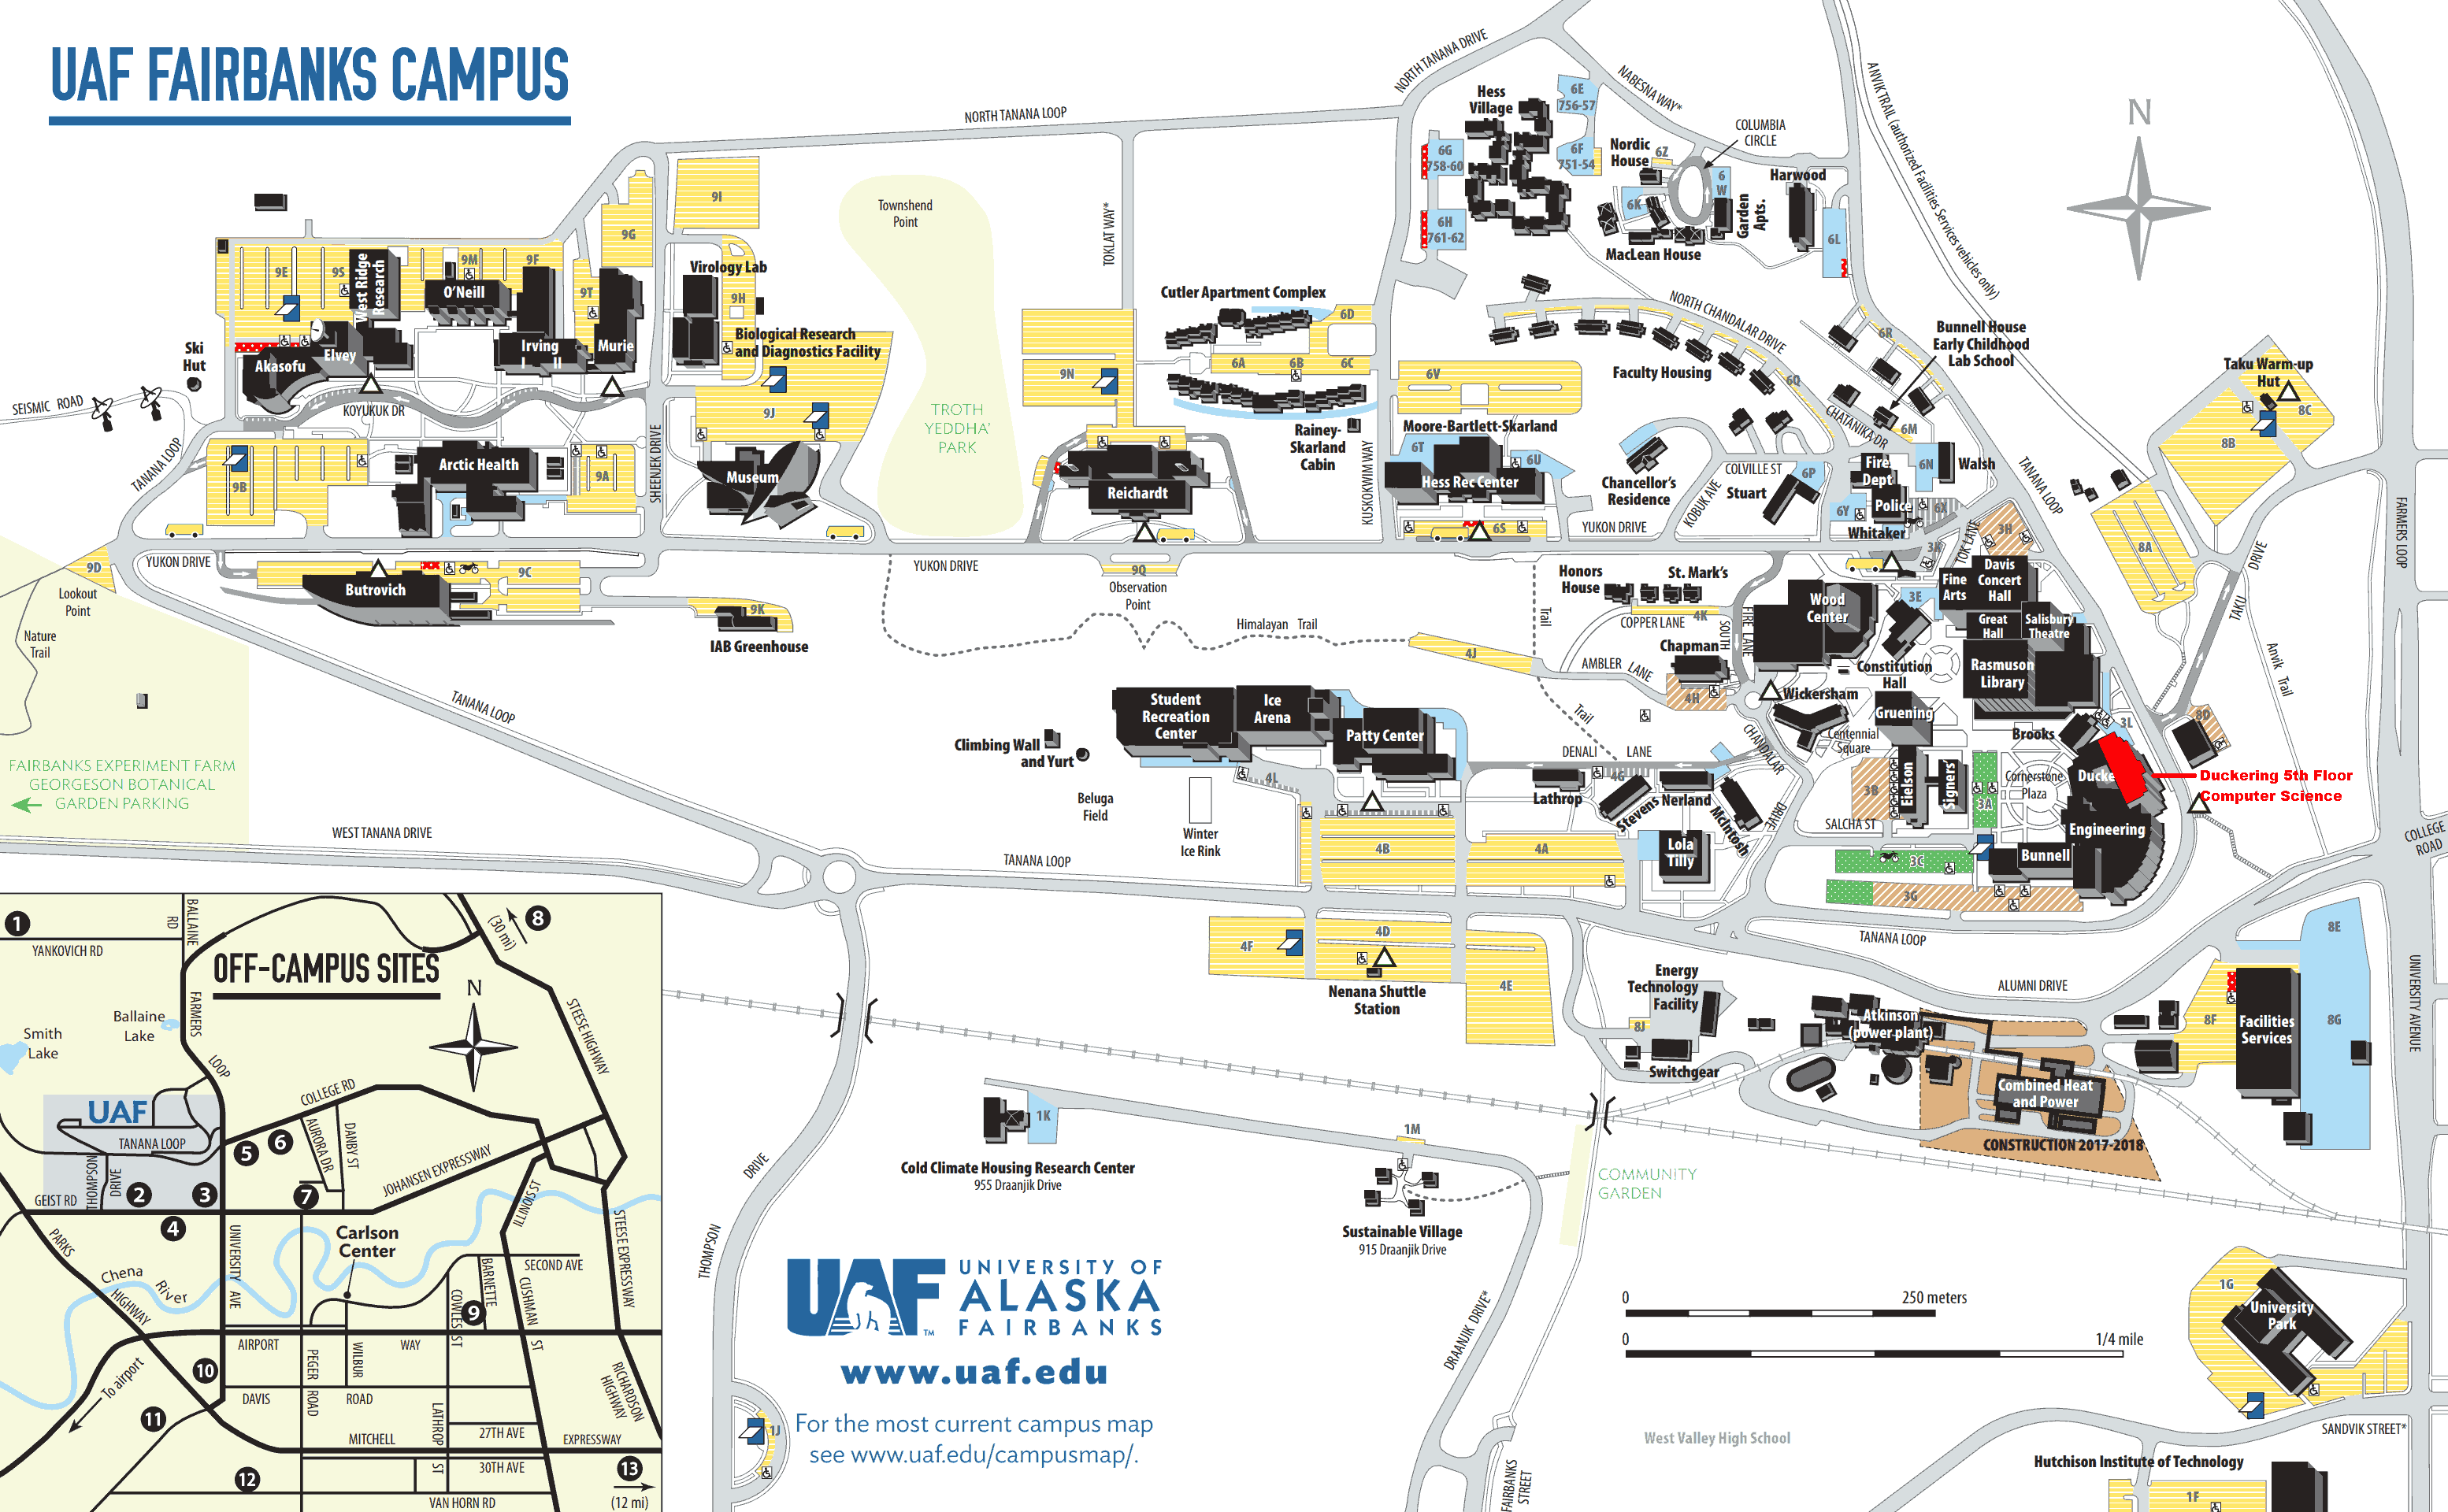 Overview map of campus